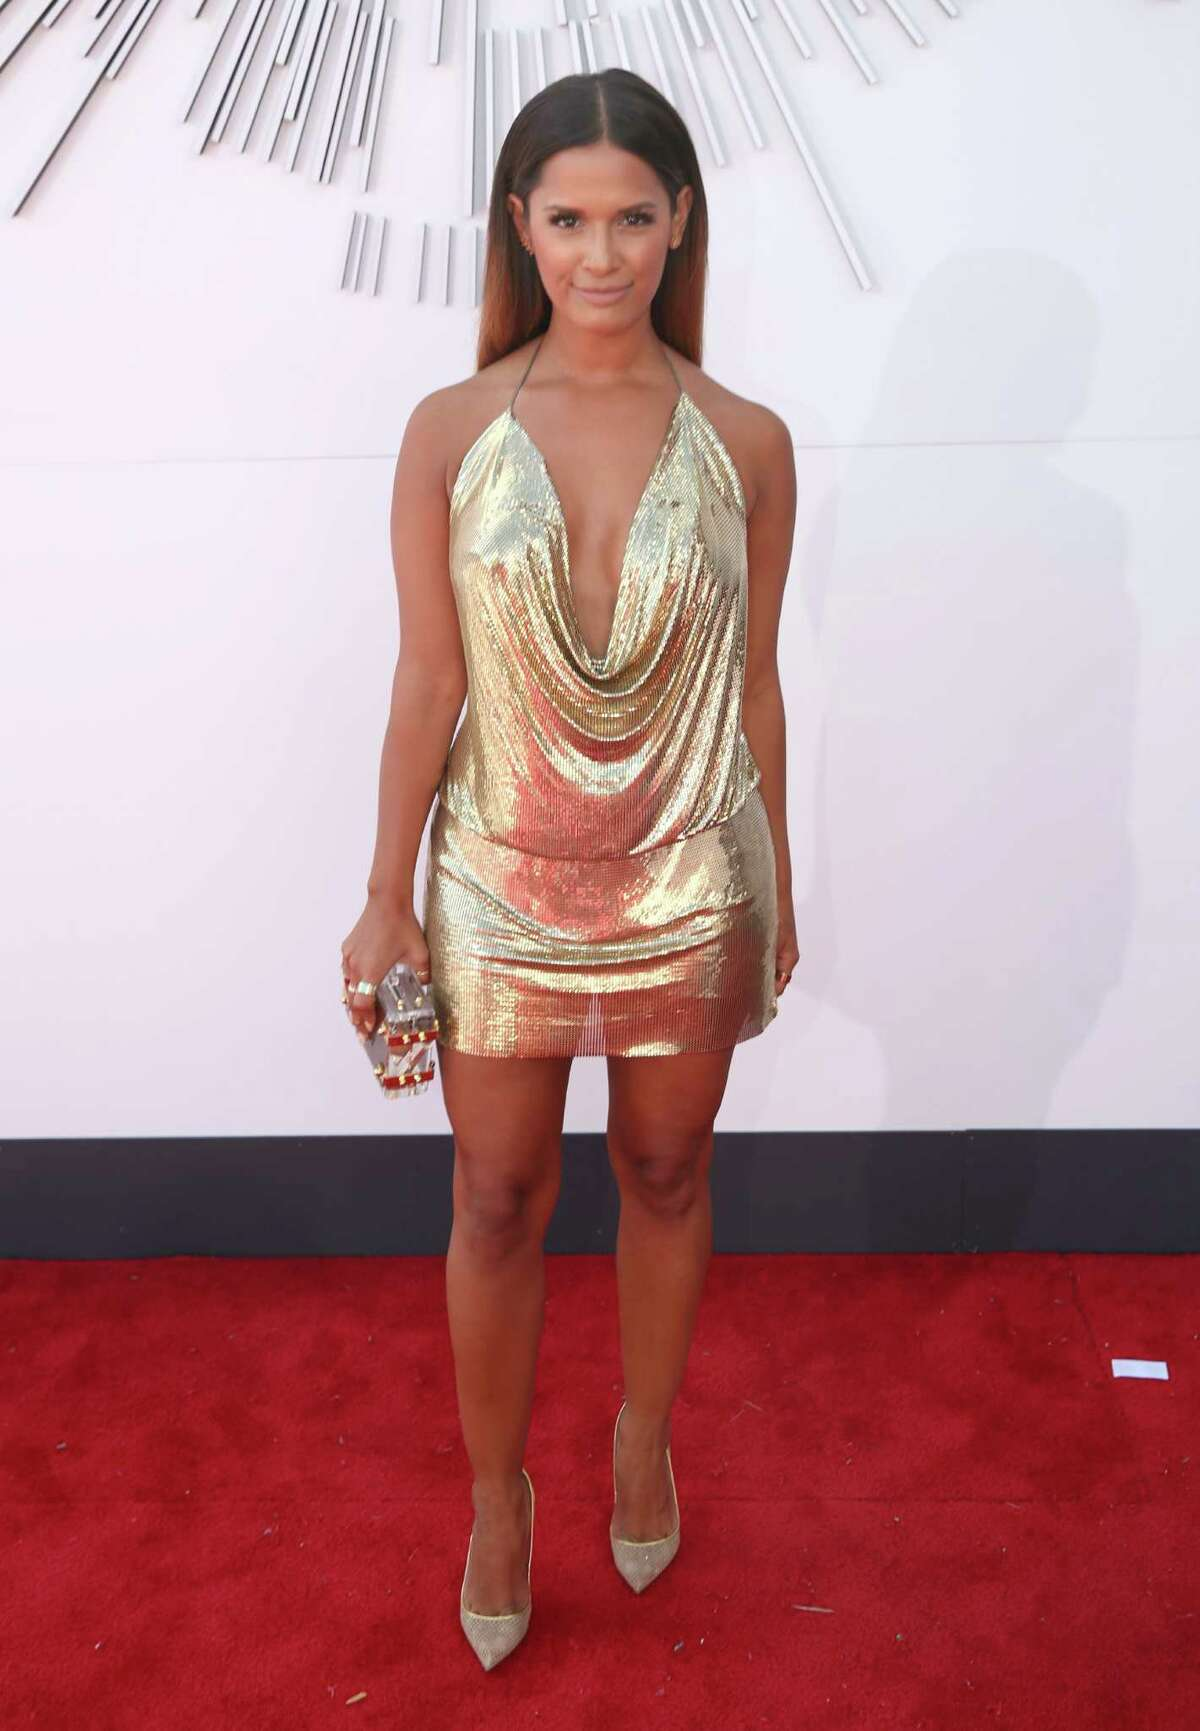 Rocsi Diaz arrives at the MTV Video Music Awards at The Forum on Sunday, Aug. 24, 2014, in Inglewood, Calif.